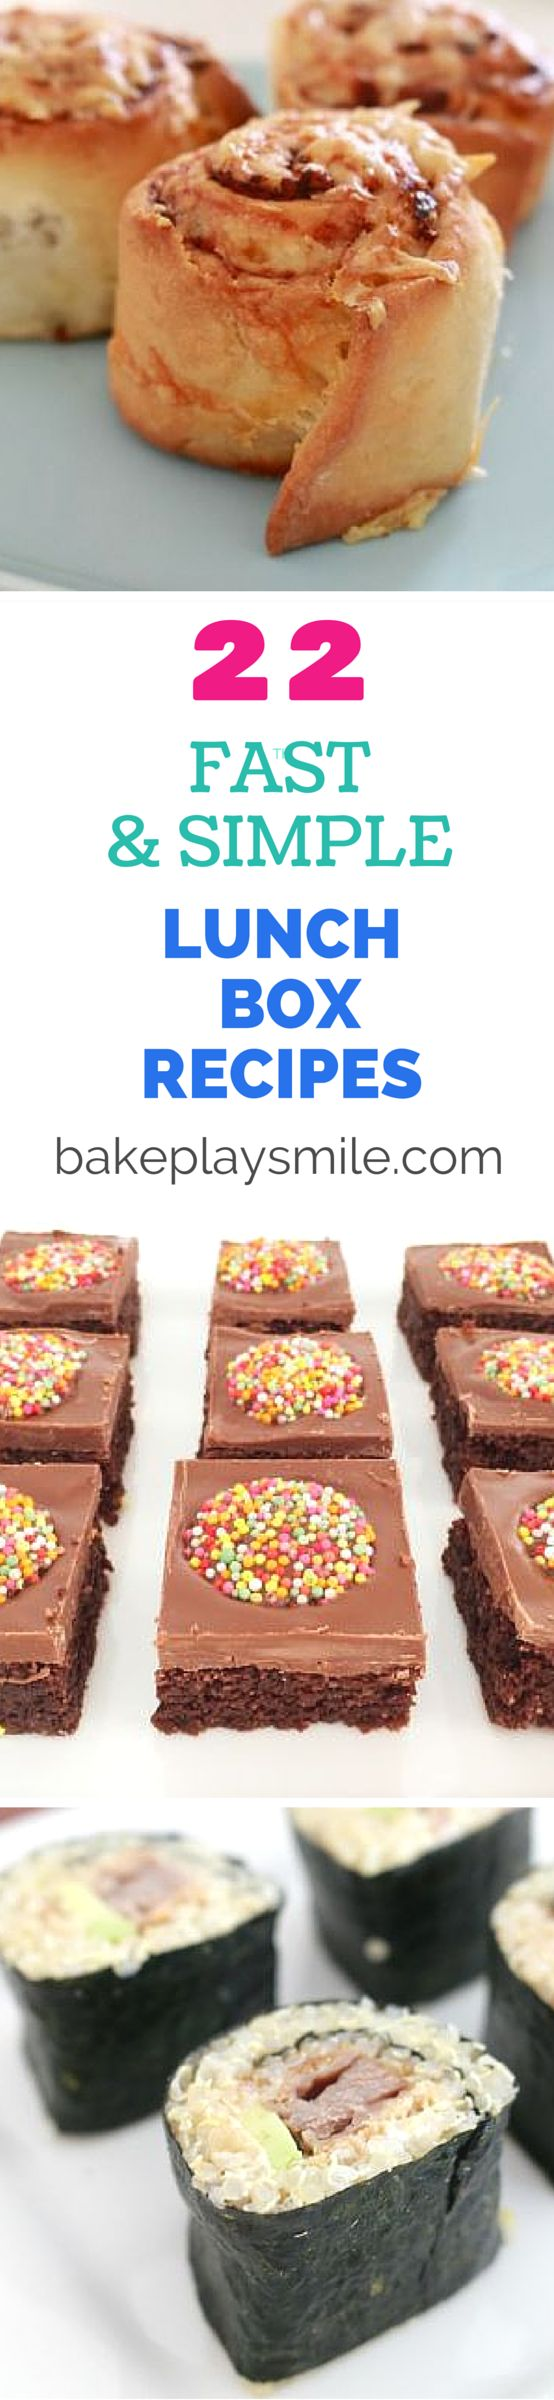 If you've got little ones at school or kindergarten, you need to check out these recipes!! They're so fast, simple and perfect for lunch boxes. #lunchbox #recipes #kidfriendly #kid #conventional #thermomix #school